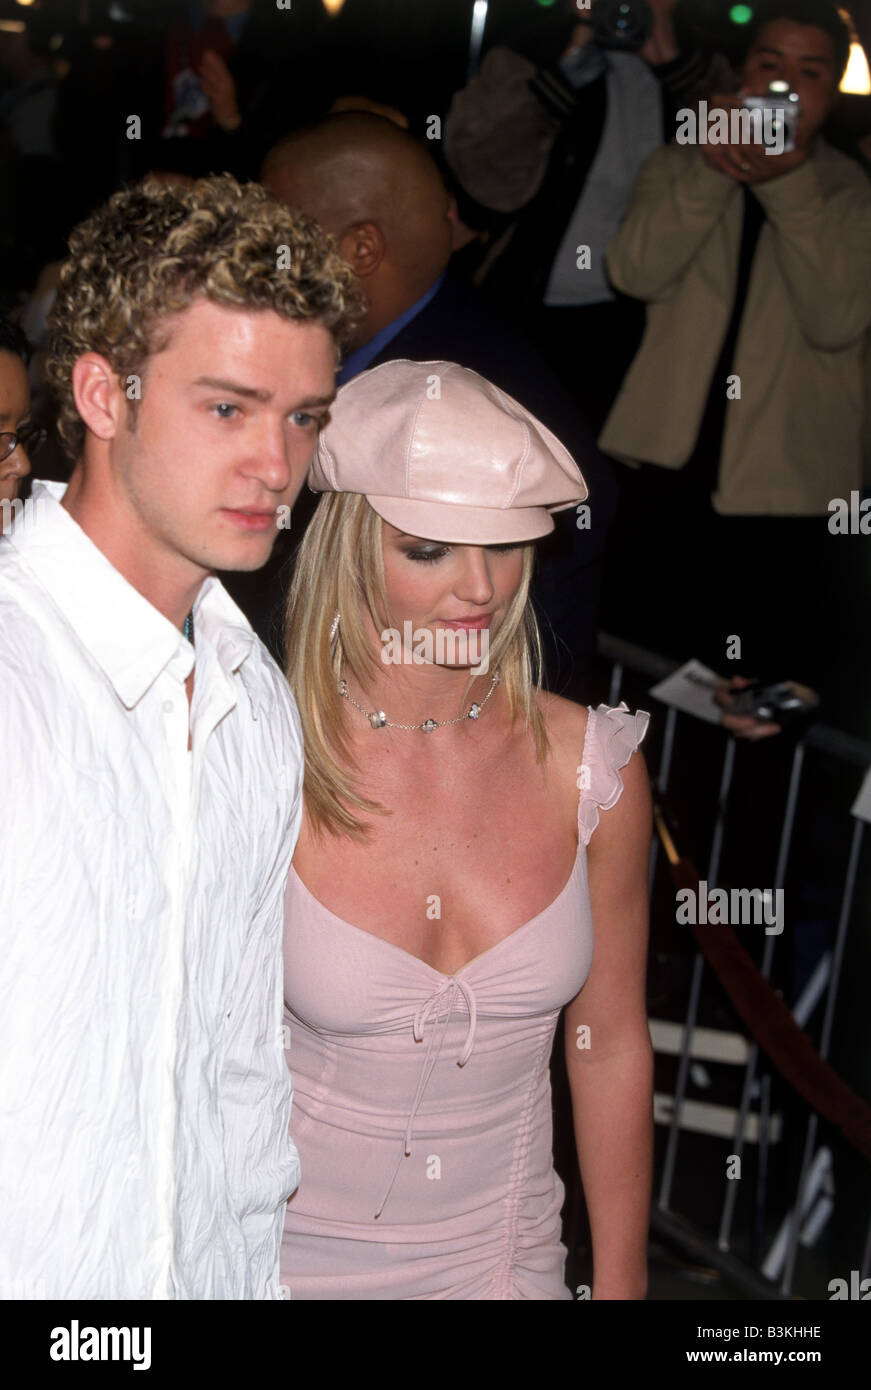 Britney Spears Us Pop Singer And Justin Timberlake In 2002 Stock Photo Alamy